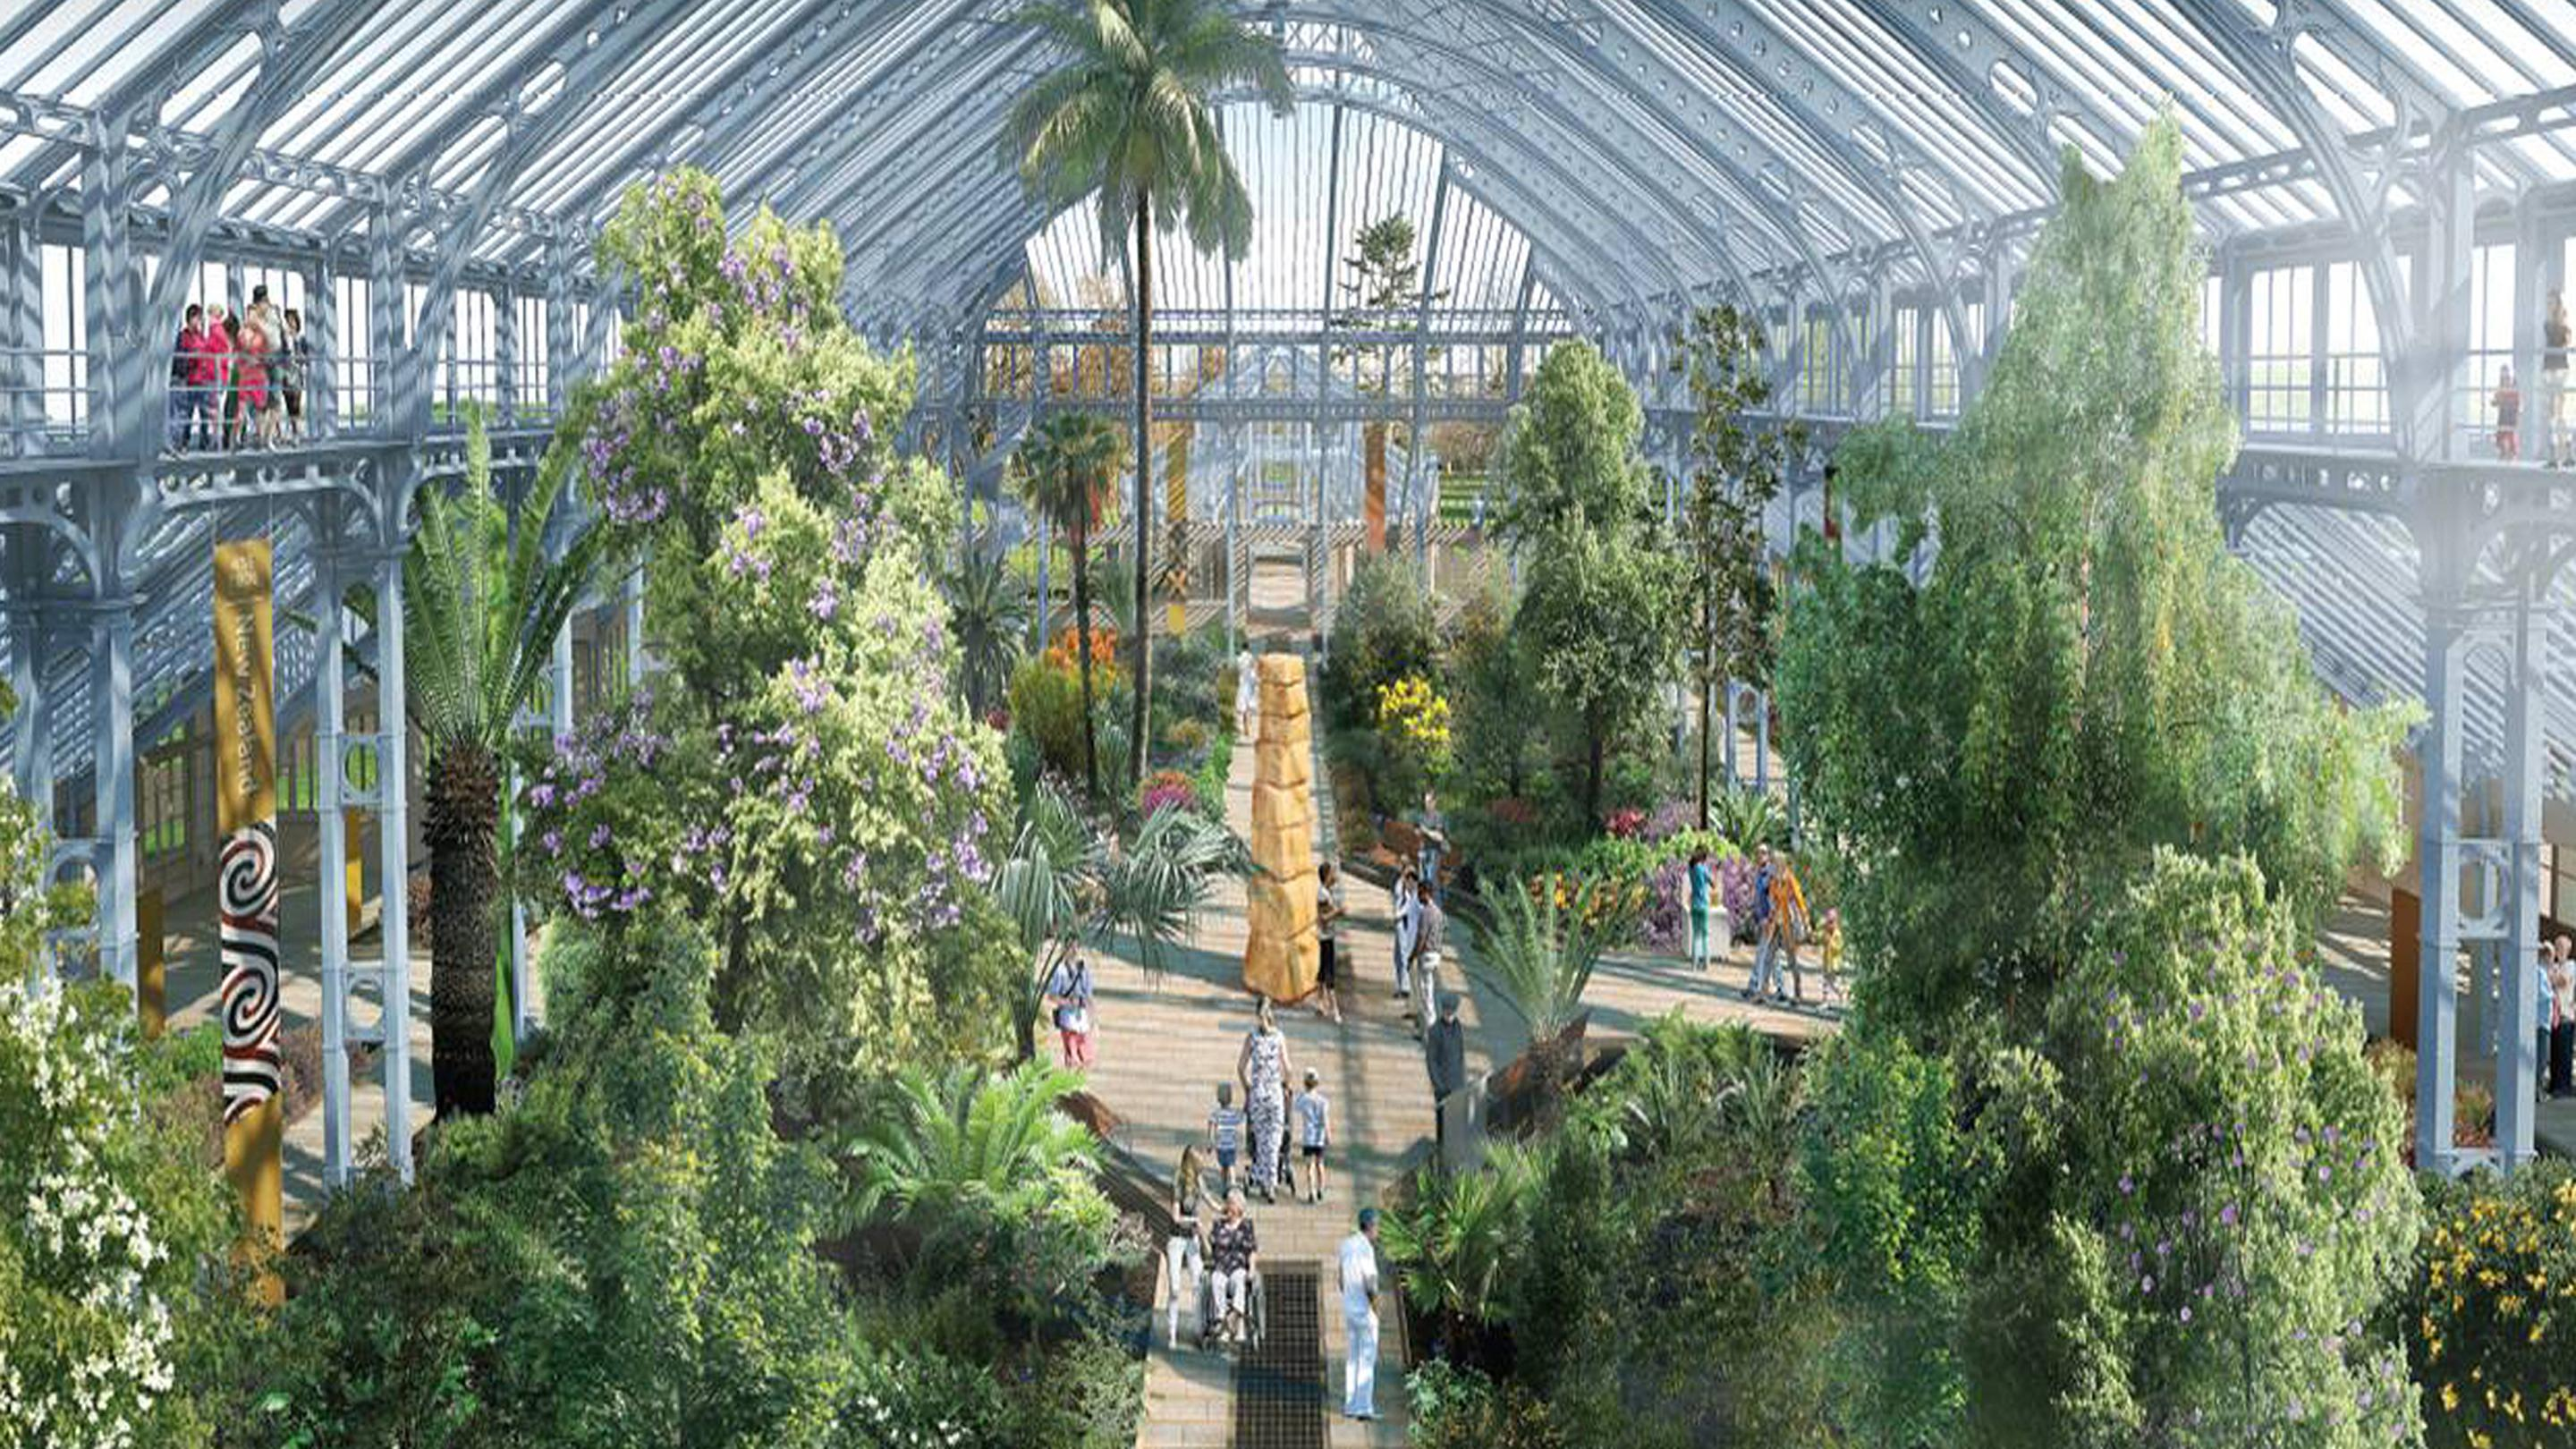 Press Release Kewu0026#39;s Iconic Temperate House To Re-open In Six Months | Kew